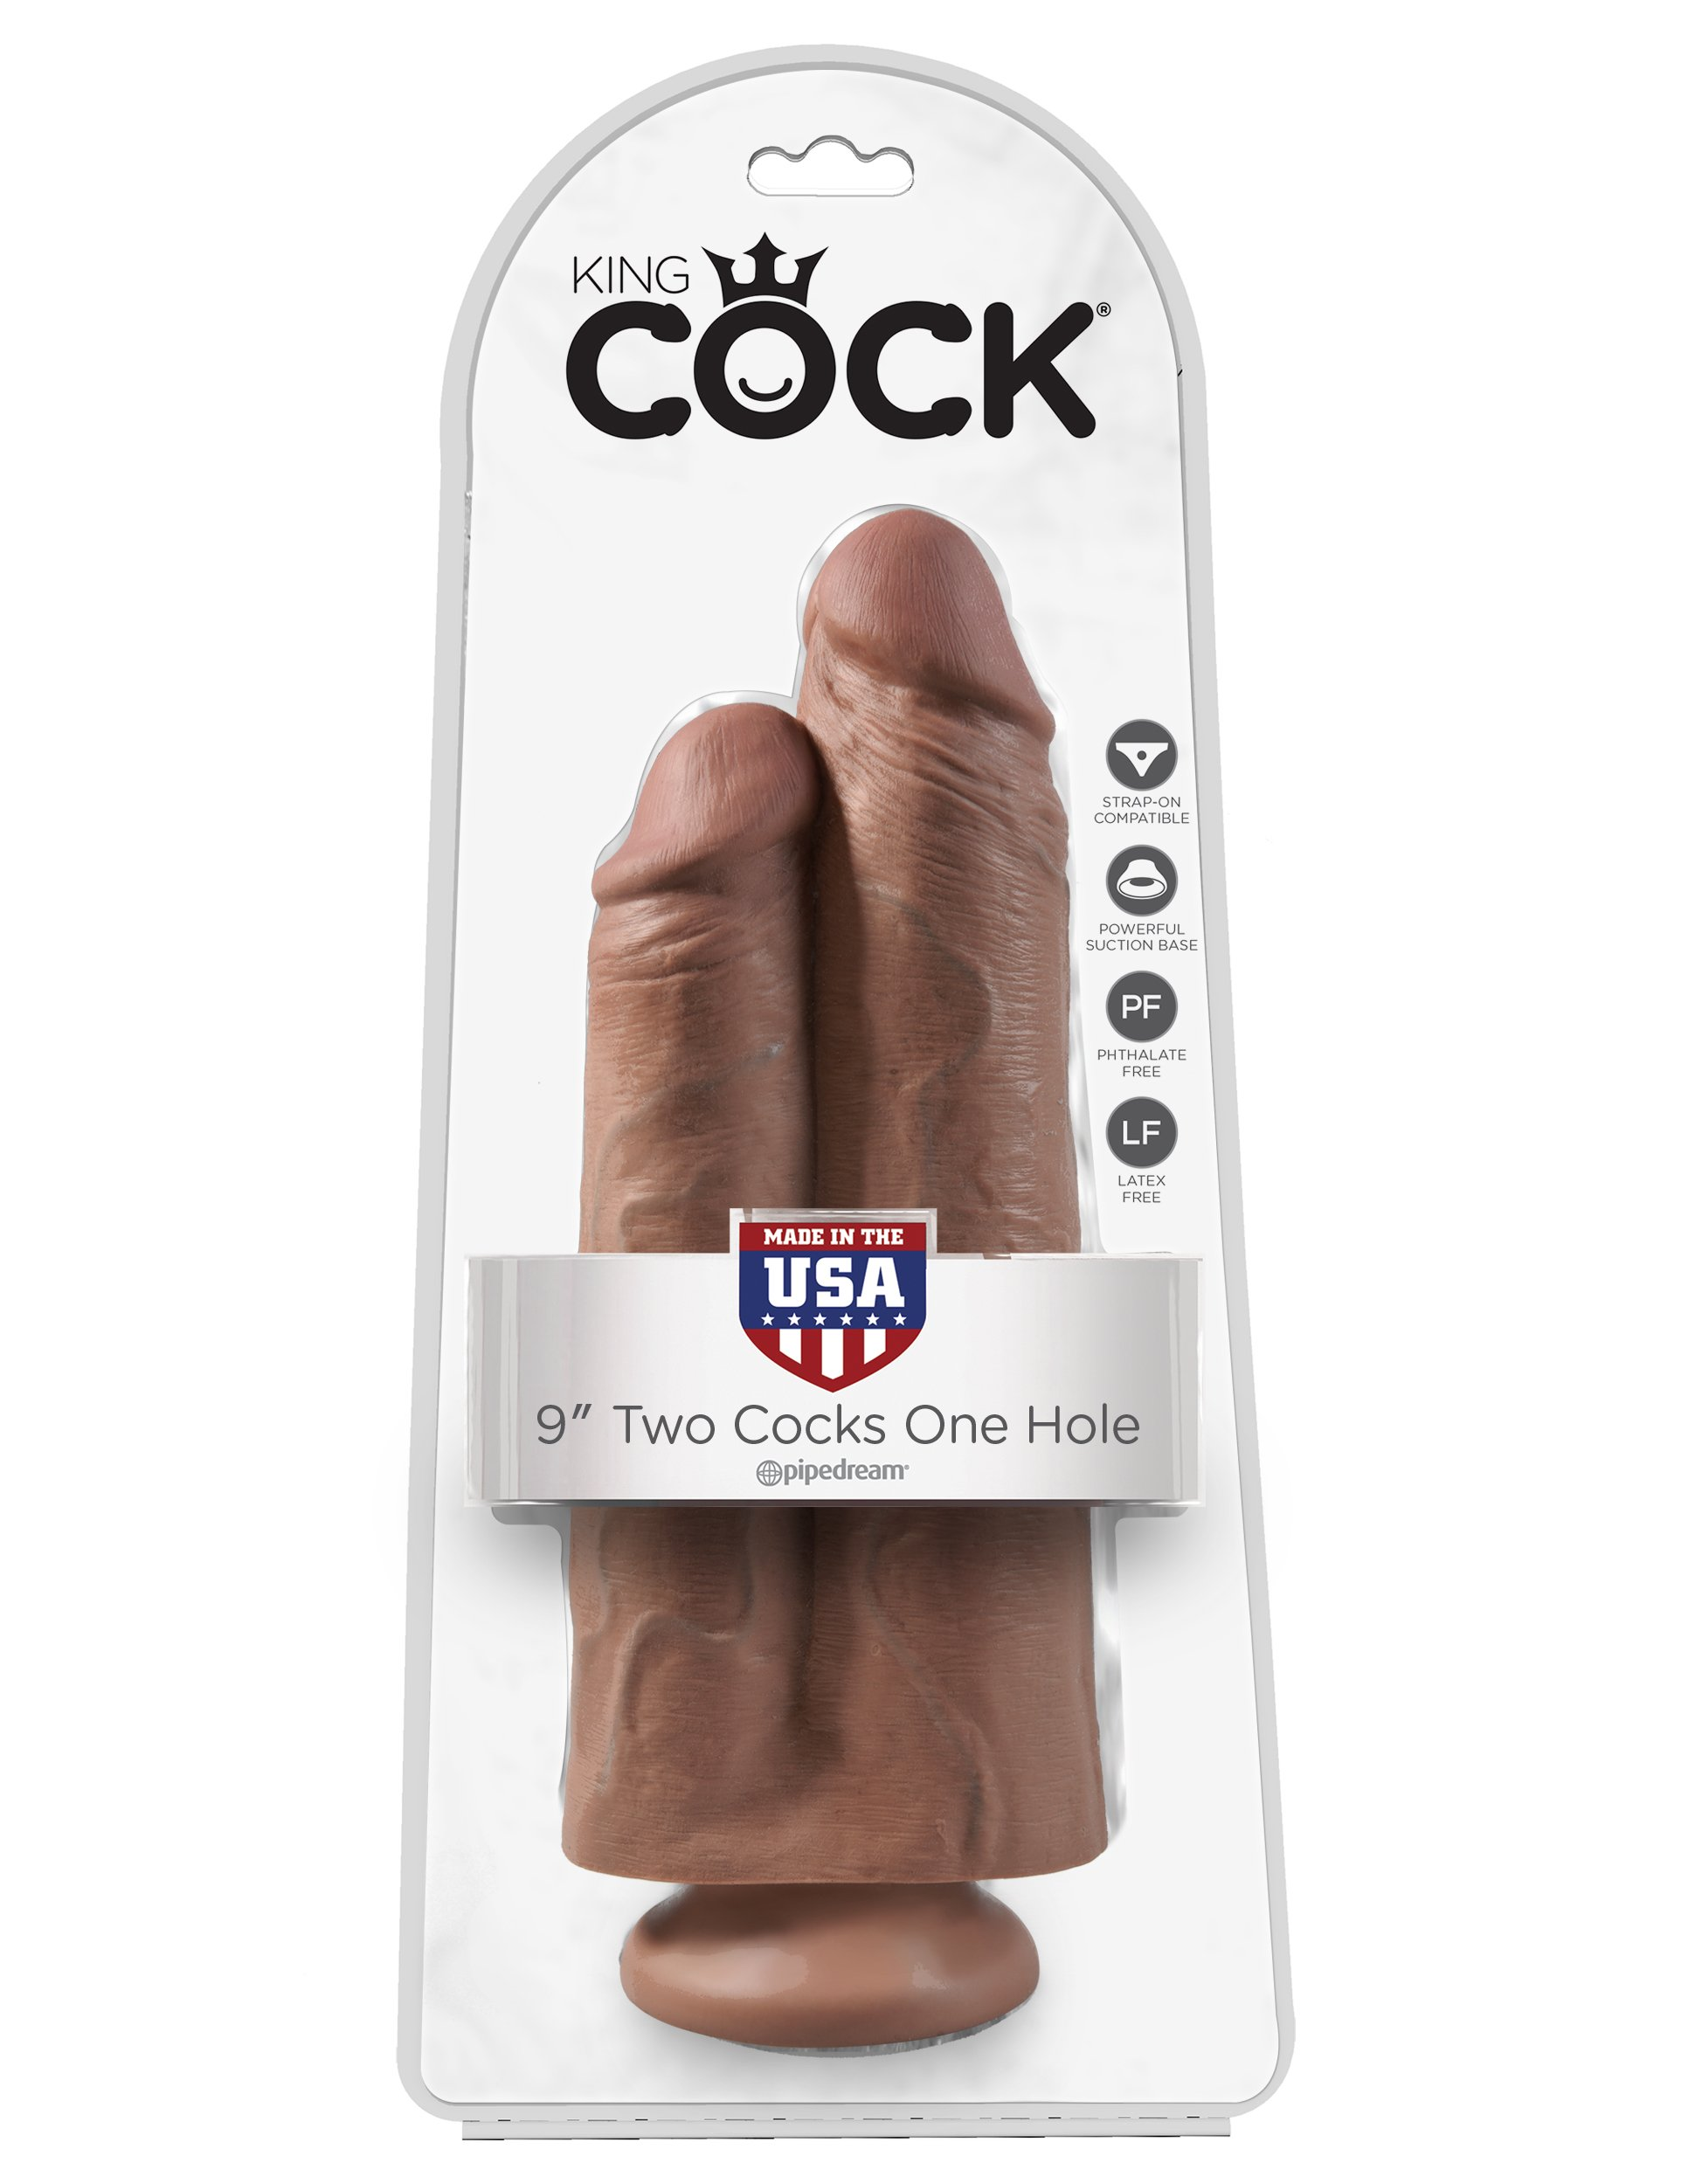 King Cock 9 '' Inch Tan Dildo, Two Cocks One Hole, Suction Base, USA Made, Pipedream